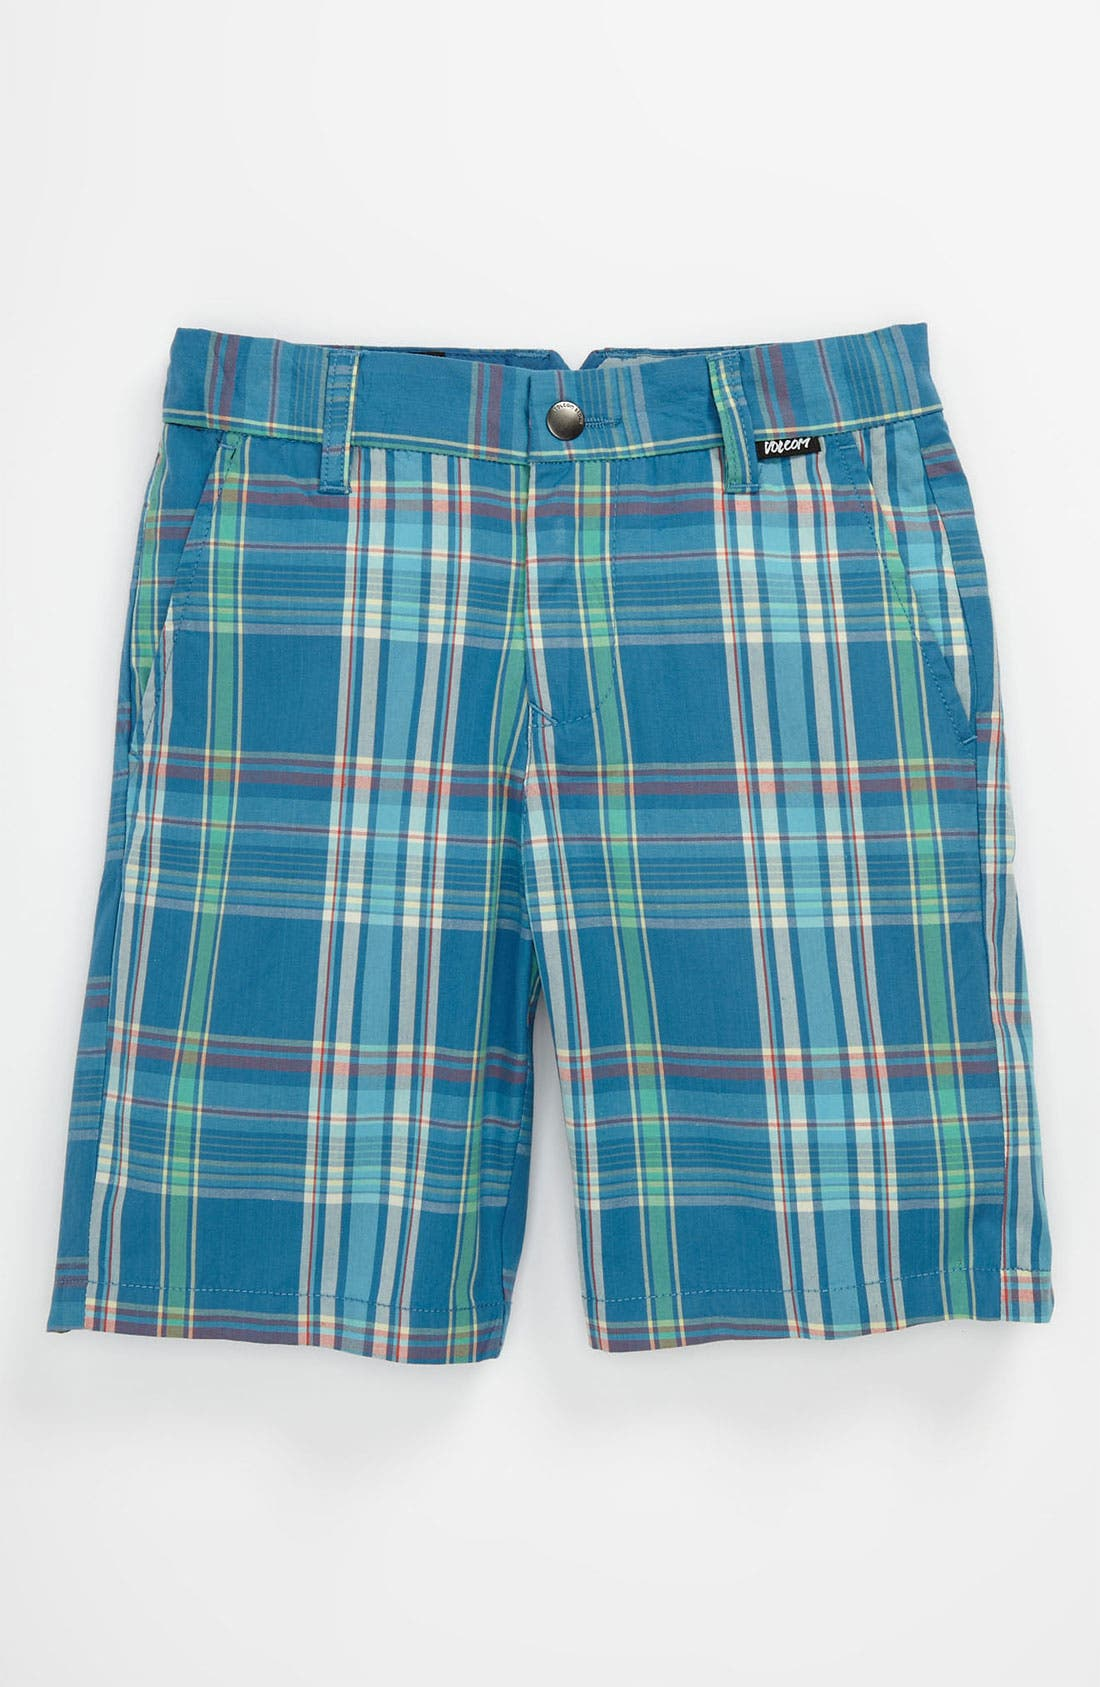 Alternate Image 1 Selected - Volcom 'Rushy' Plaid Shorts (Big Boys)